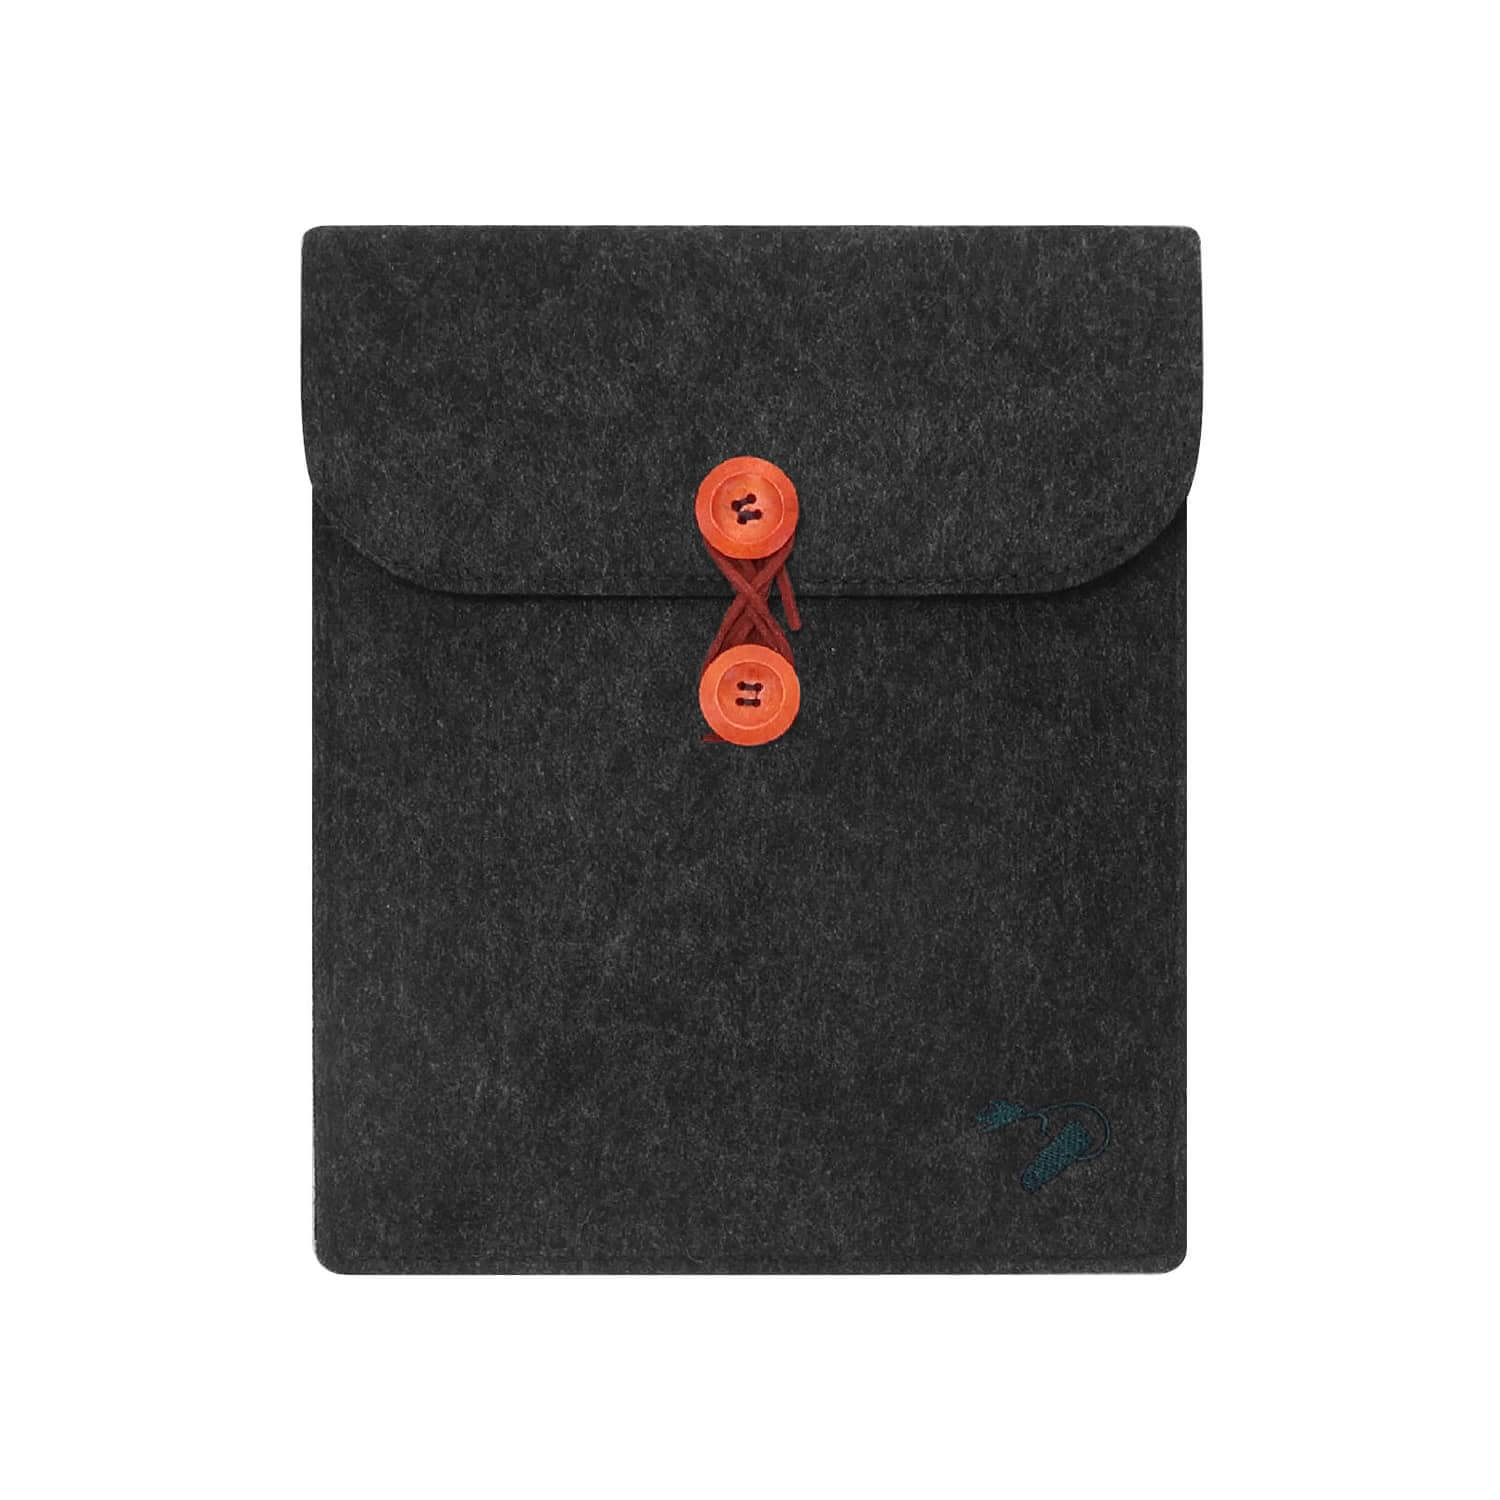 Felt case tablet 9.7 - travel darkgrey 1